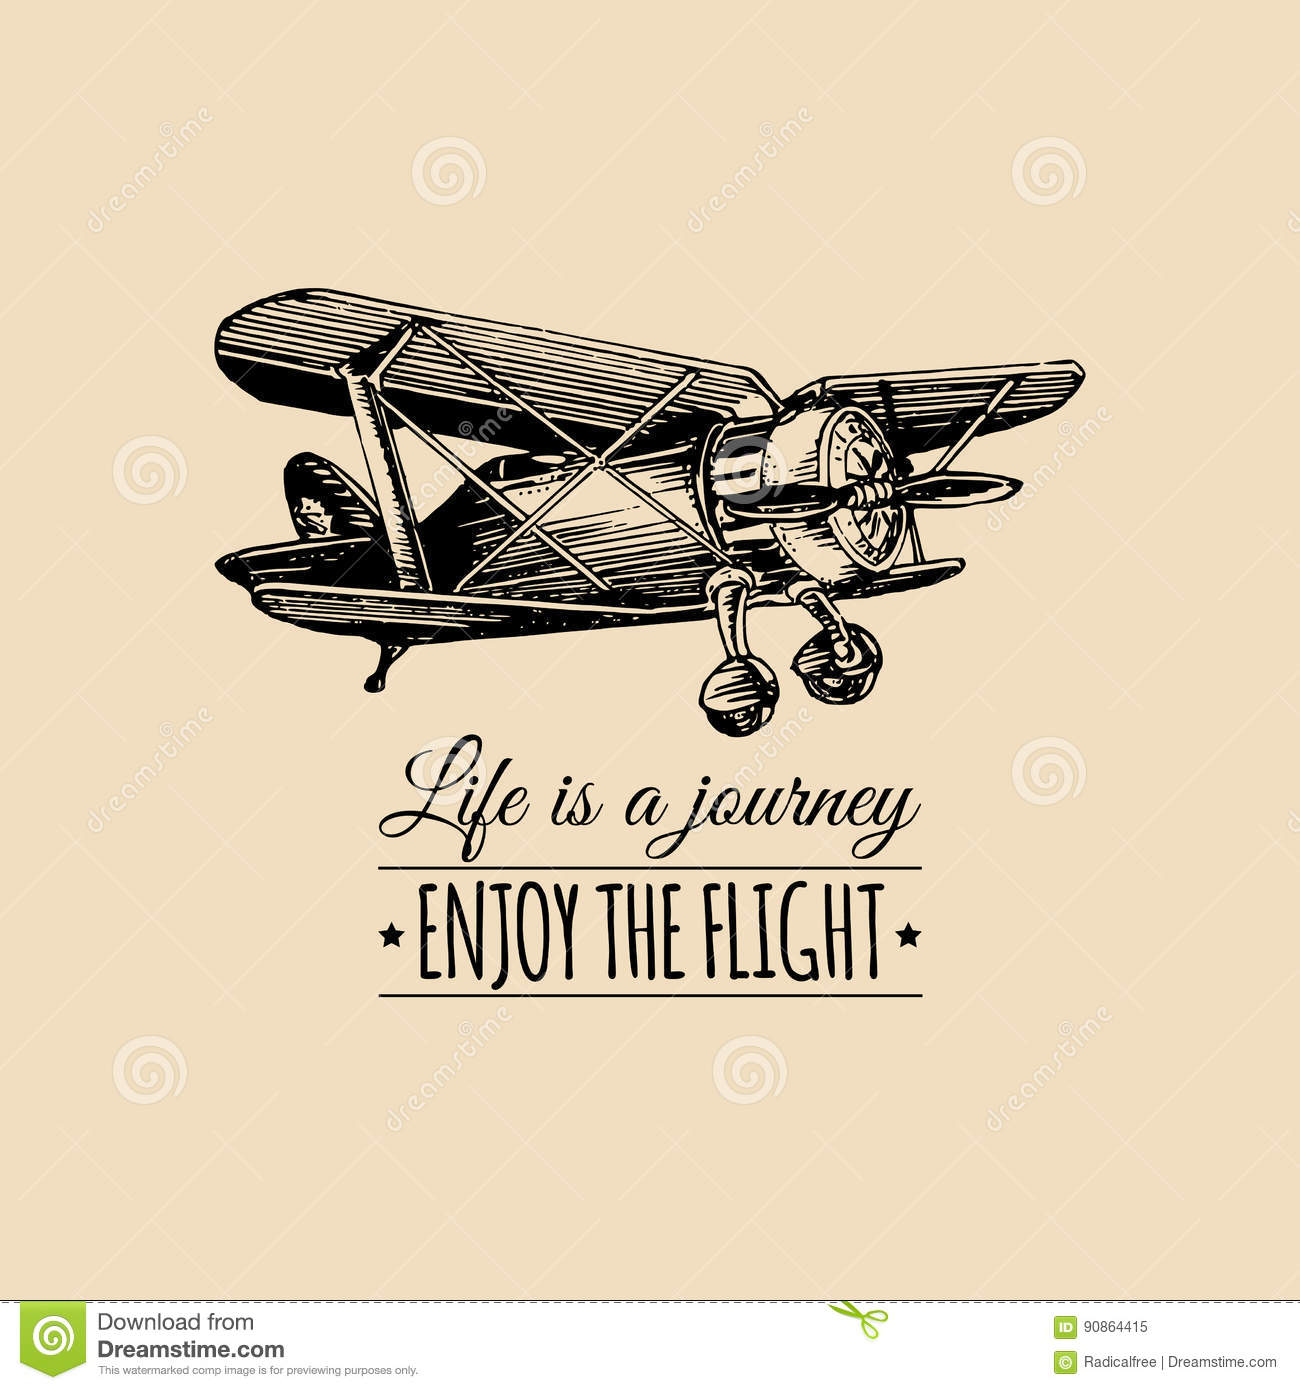 Classic Retro Illustration: Aviation Cartoons, Illustrations & Vector Stock Images